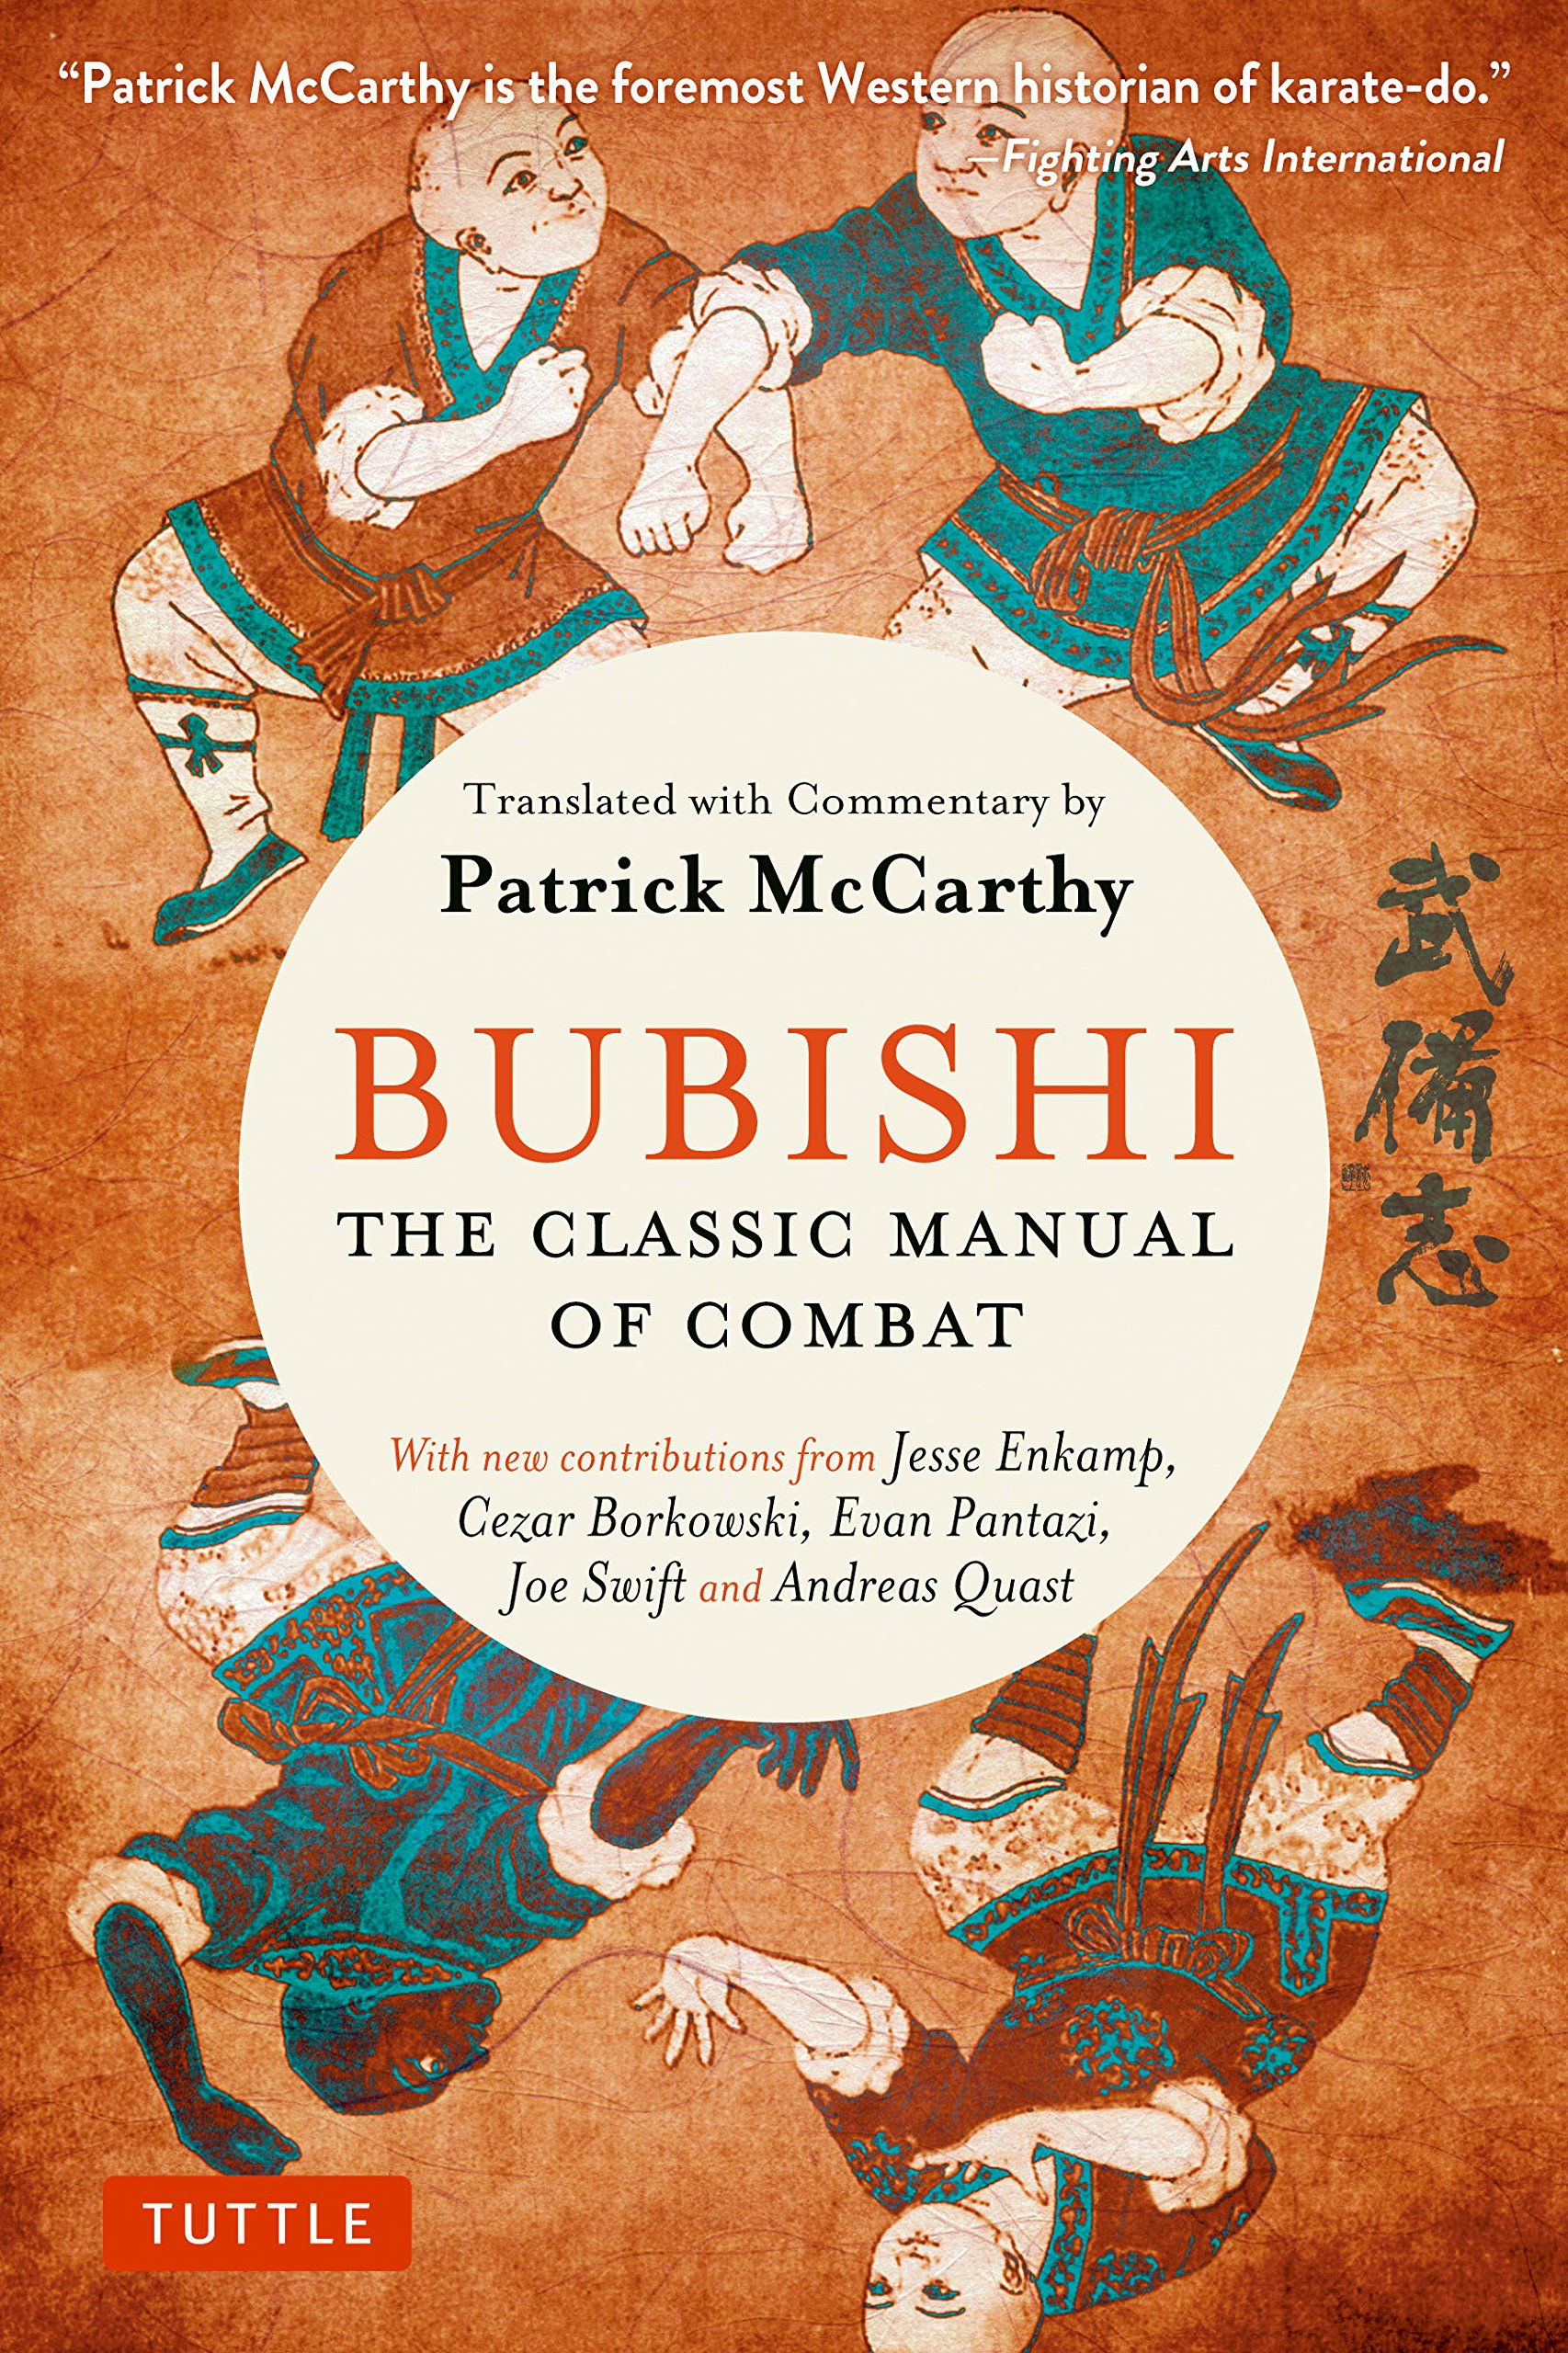 Bubishi: The Classic Manual of Combat: Amazon.es: Patrick McCarthy, Joe Swift: Libros en idiomas extranjeros